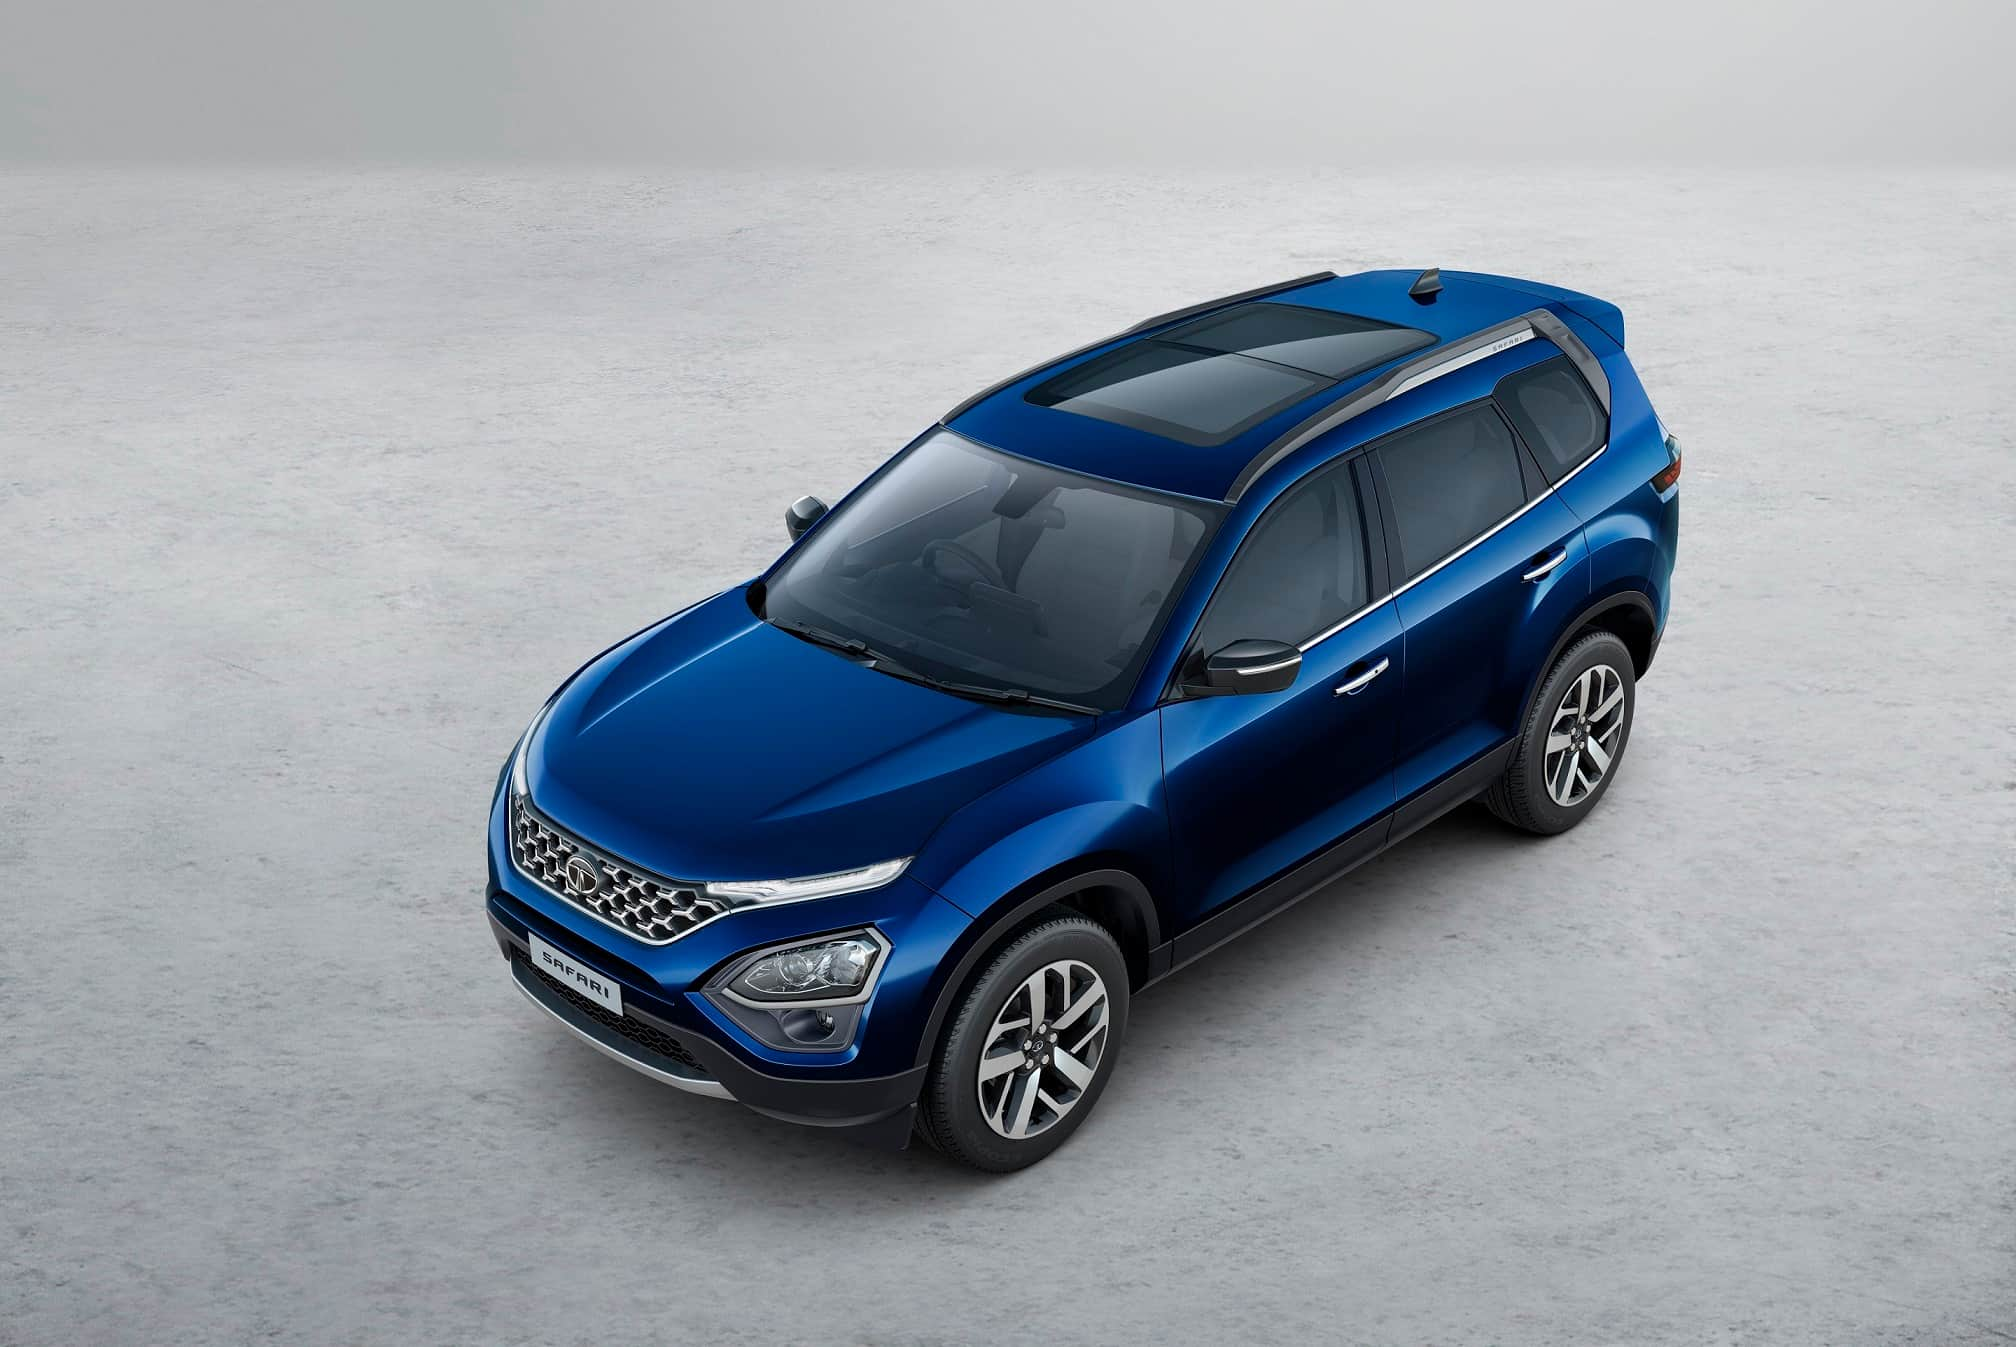 In terms of aesthetics, the SUV gets a butch stance typical of an SUV with flared wheel arches and the strong character lines. The SUV uses a relatively large grille which is accentuated due to the sleek DRLs. The LED projector headlamp cluster sits below the DRLs.